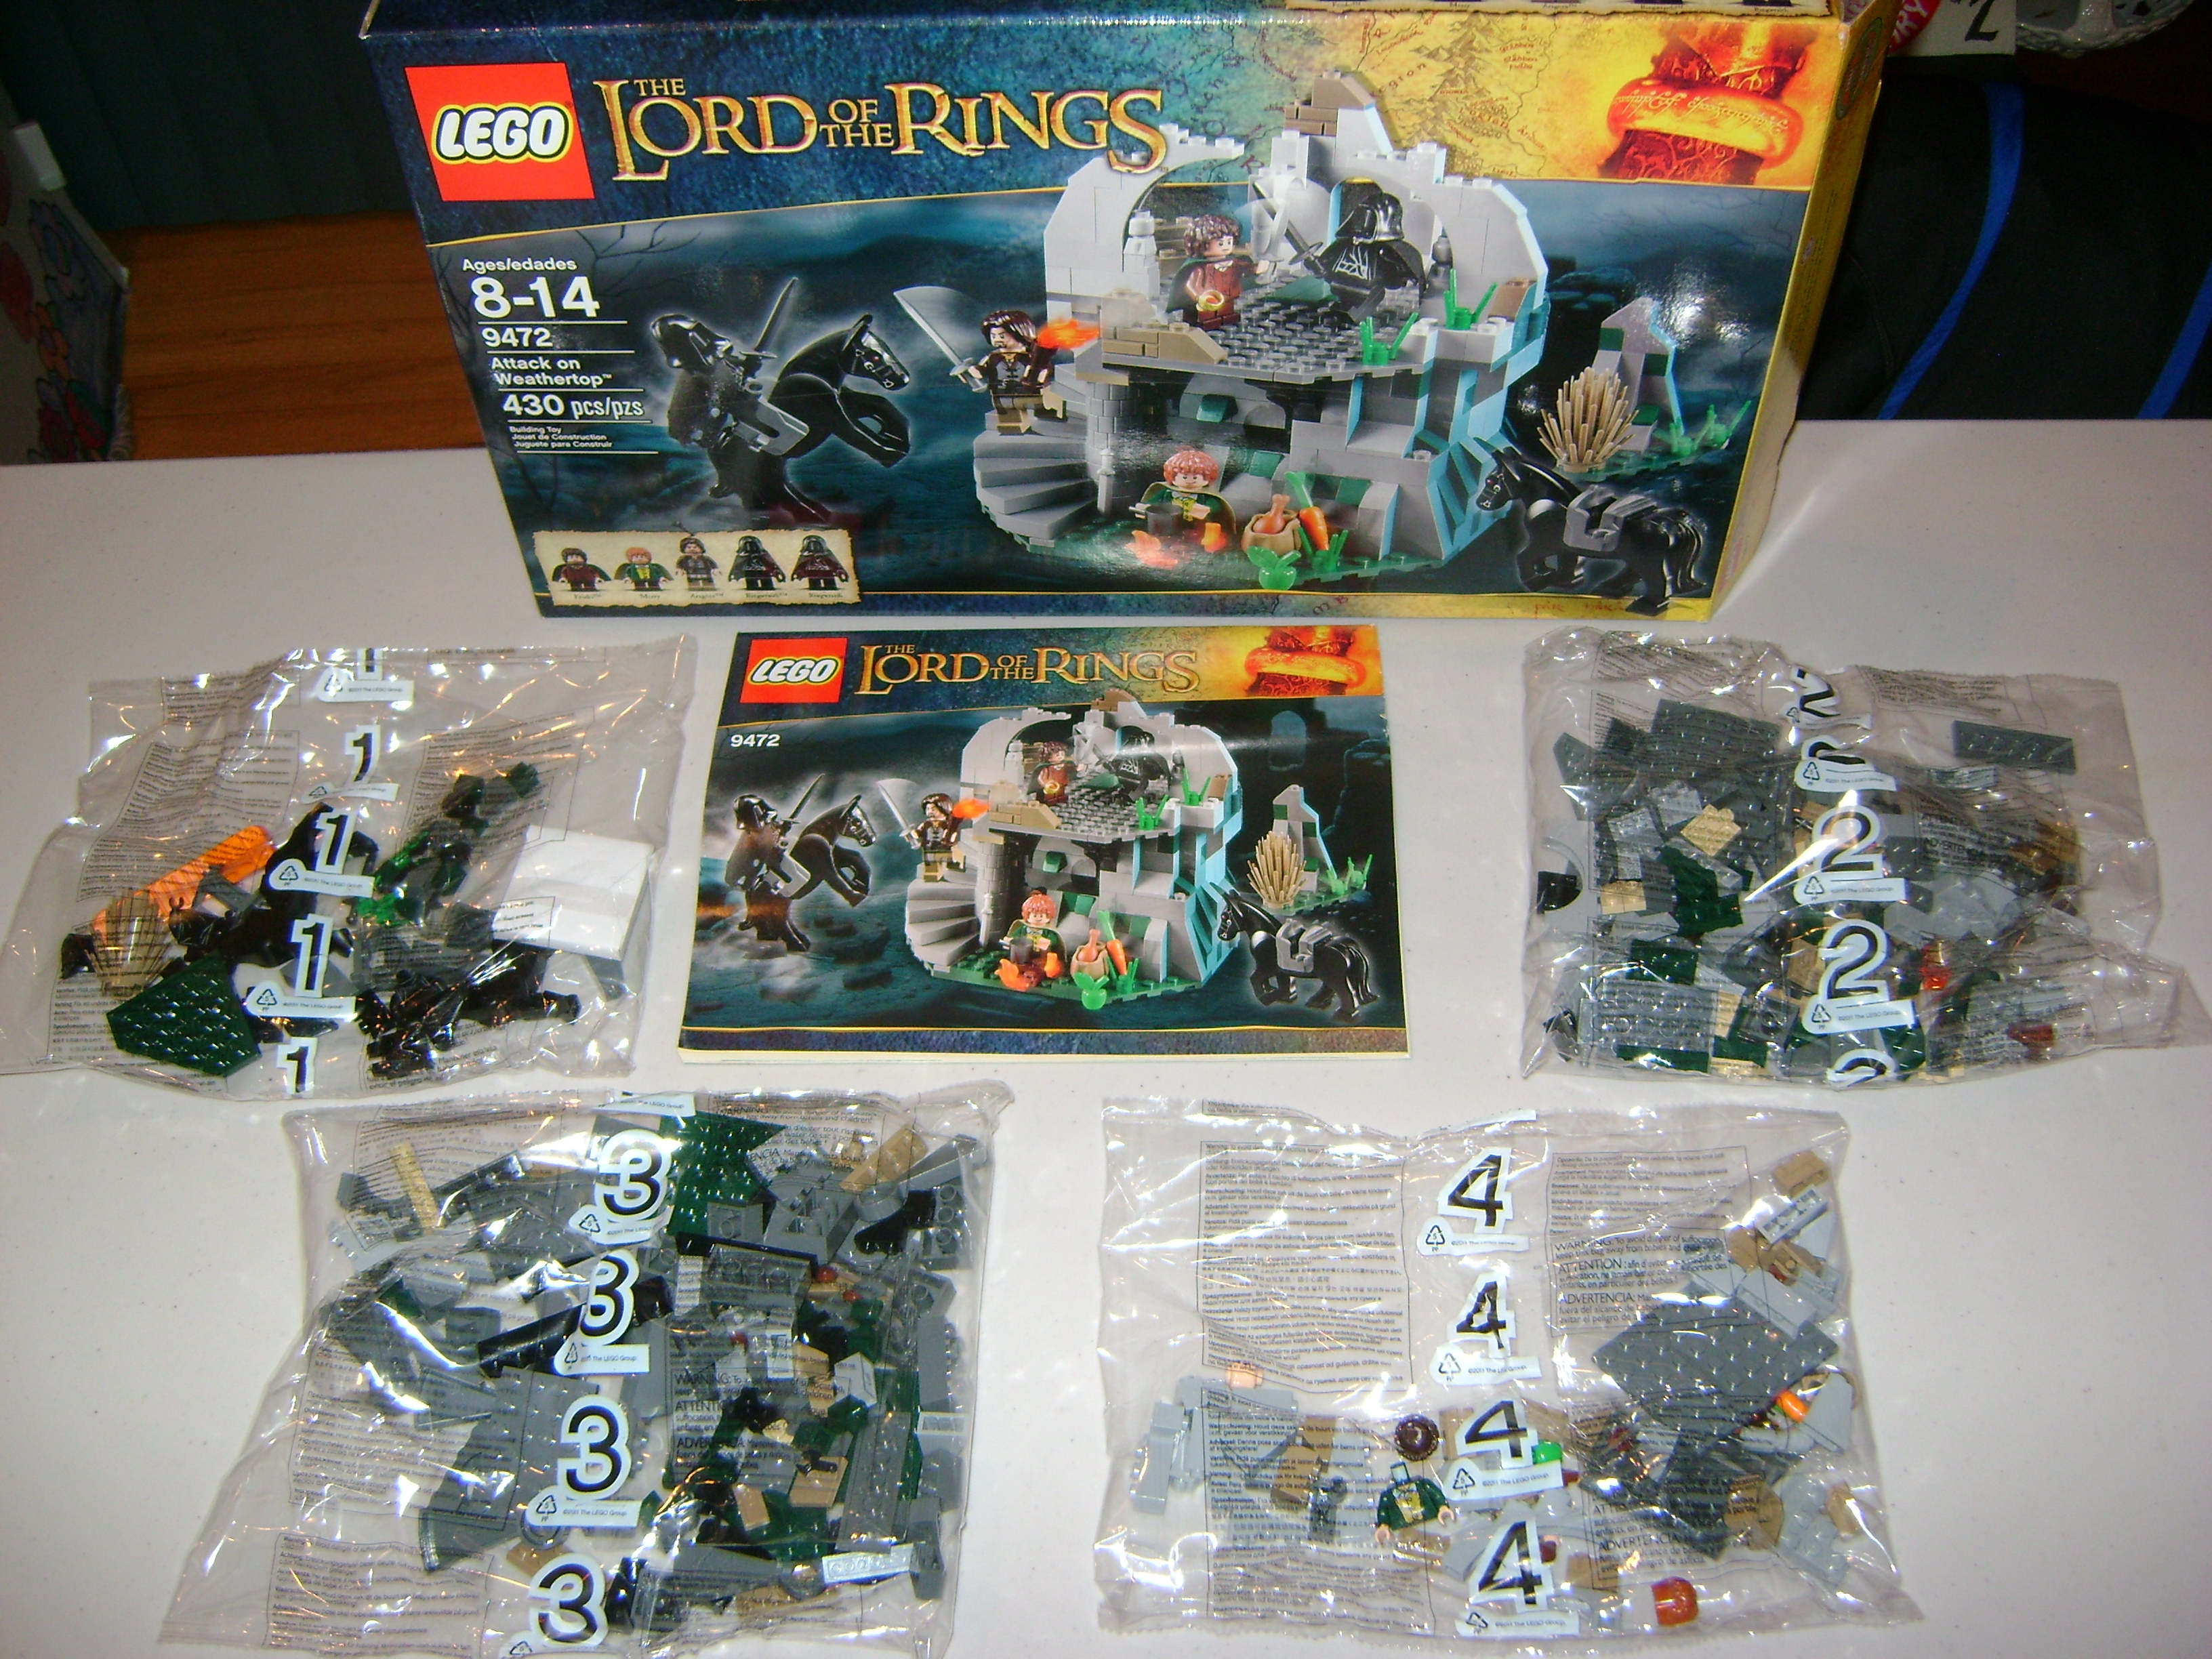 LEGO Lord of The Rings LOTR 9472 Attack on Weathertop ARAGORN Minifigure Figure